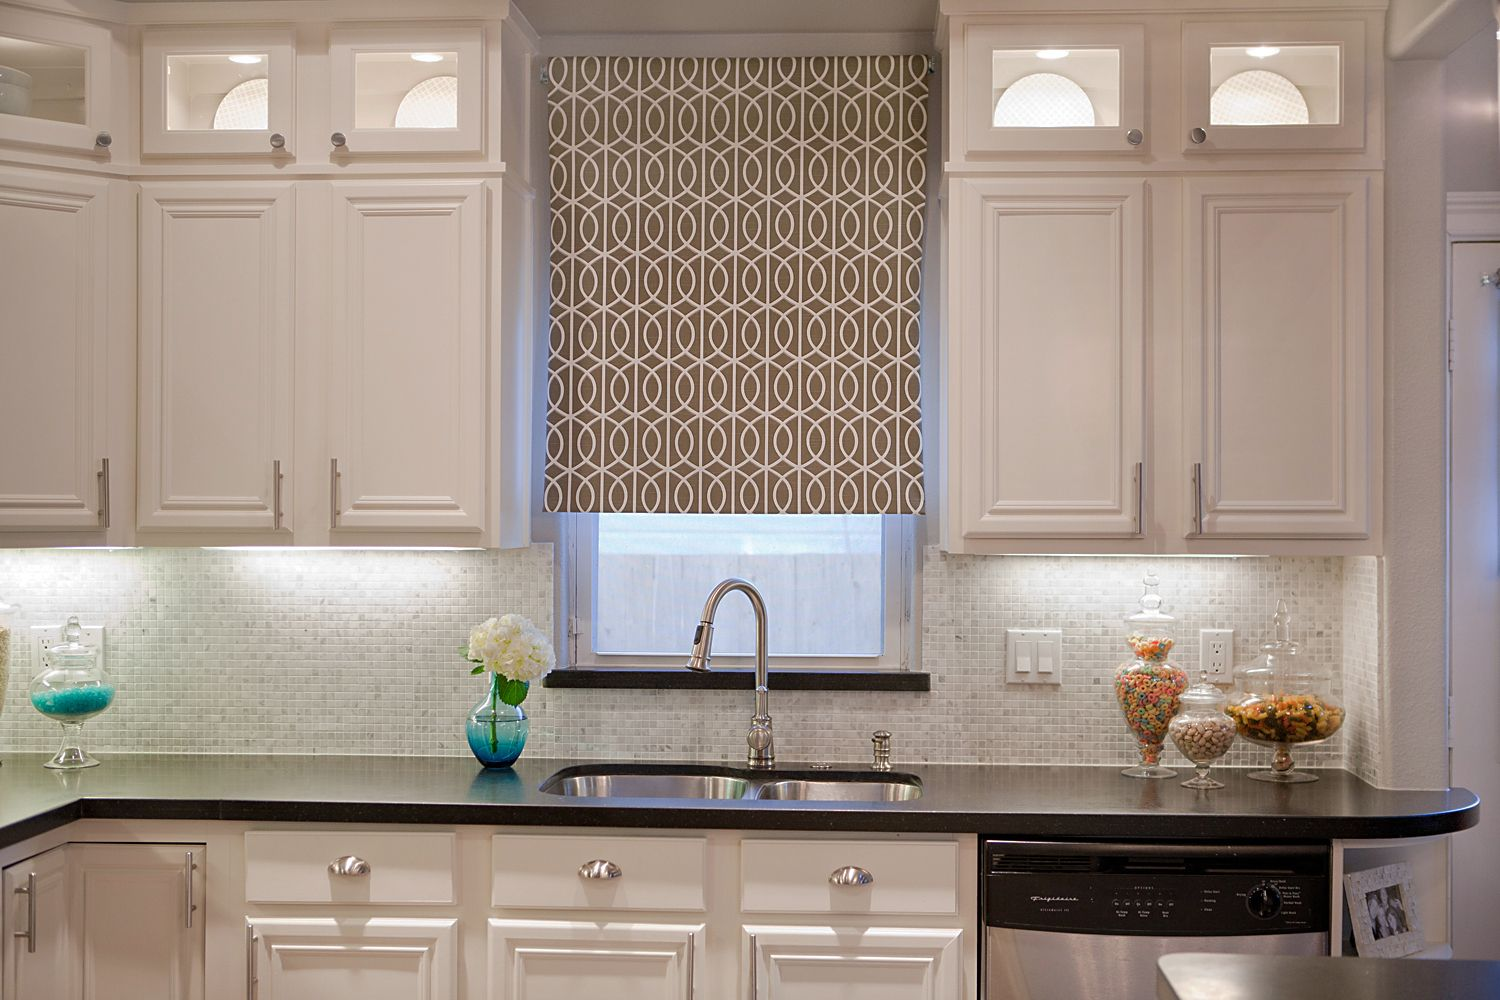 Kitchen window roman blinds  choosing the right kitchen window treatments in   home decor